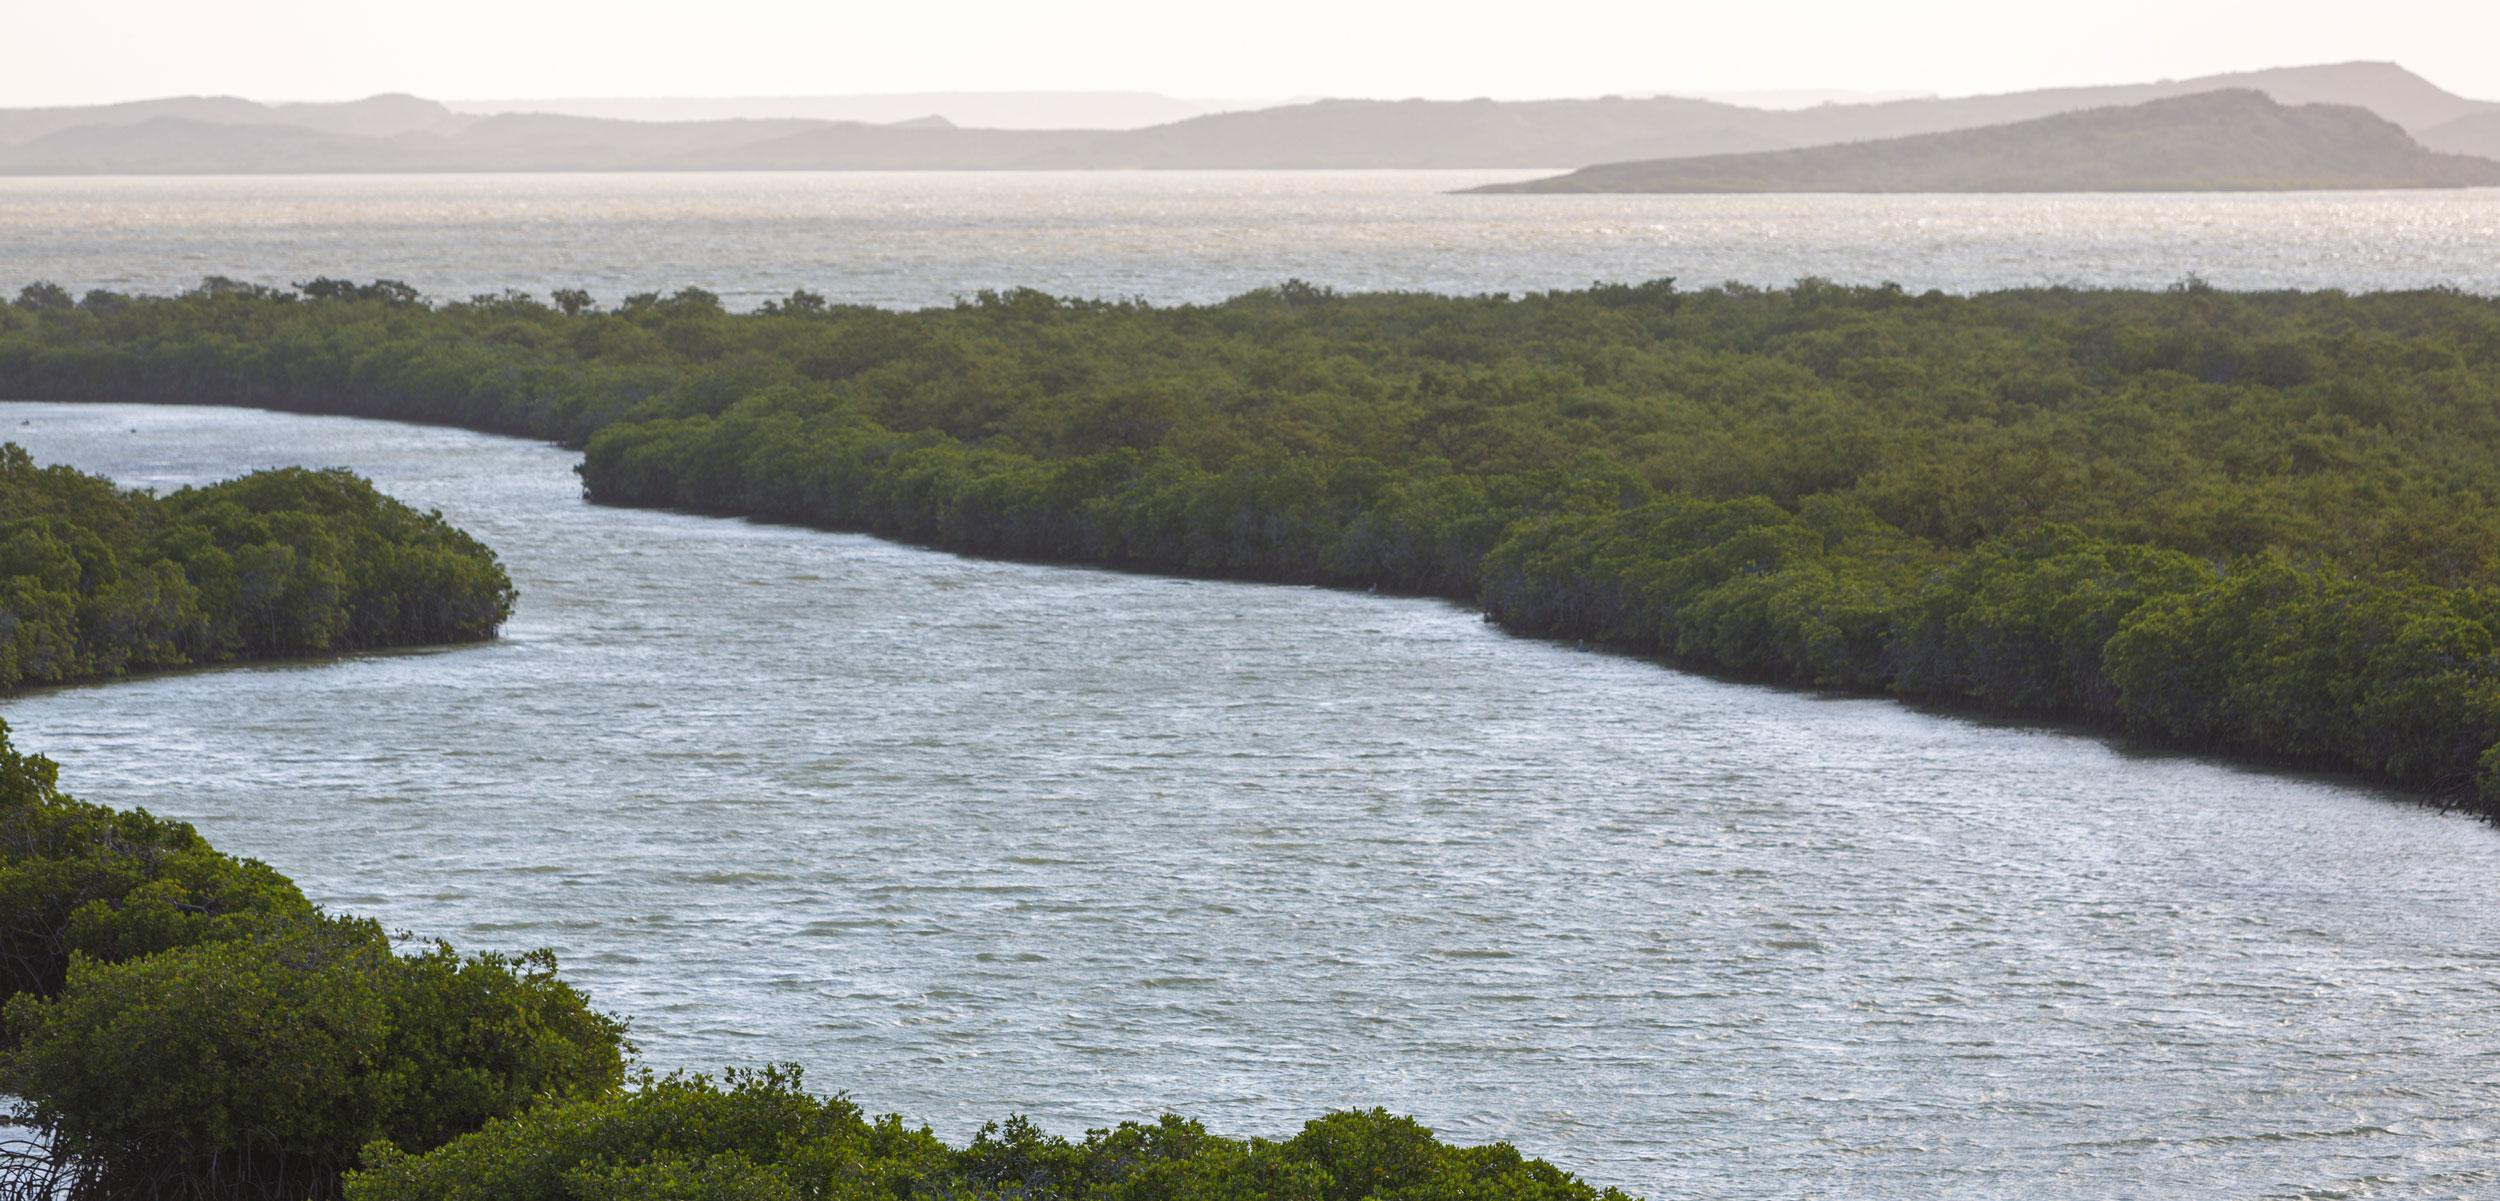 Aerial view of mangroves and coastline near Punta Gallinas in La Guajira, Colombia 2014